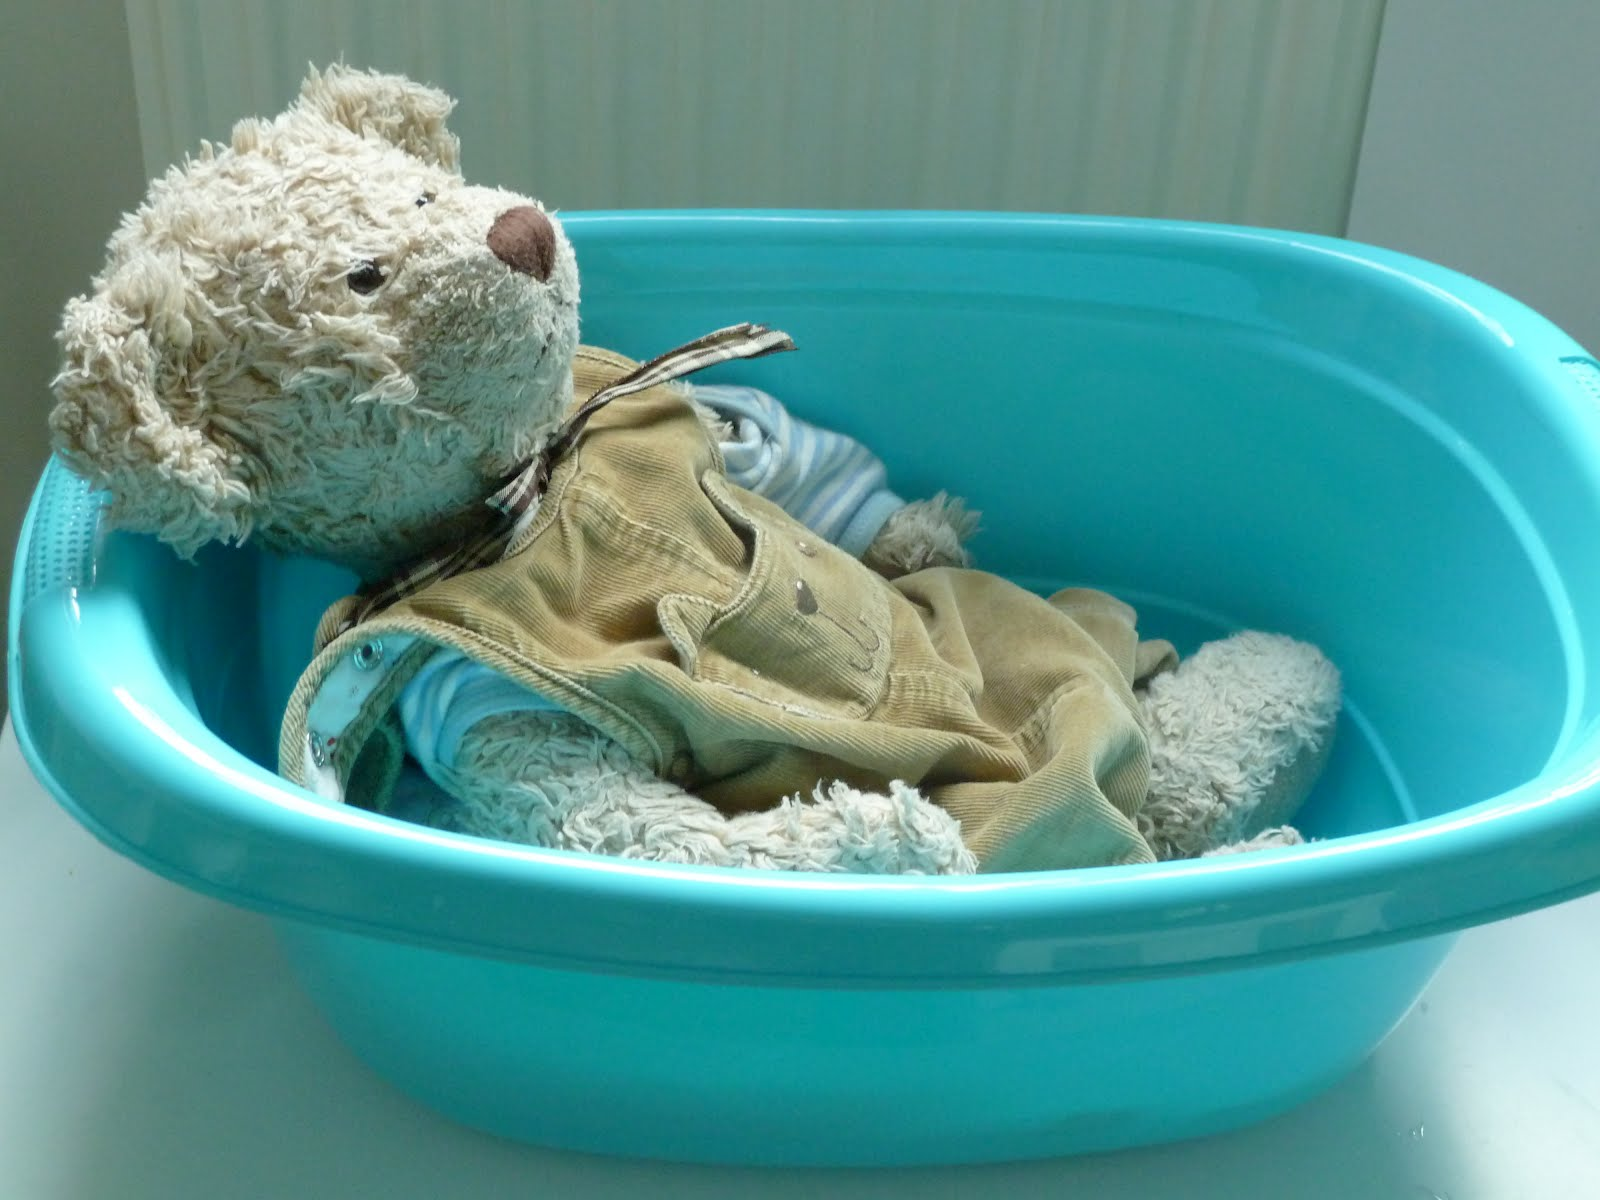 Bathing Baby Teddy-Bear (Photo from Family FECS)